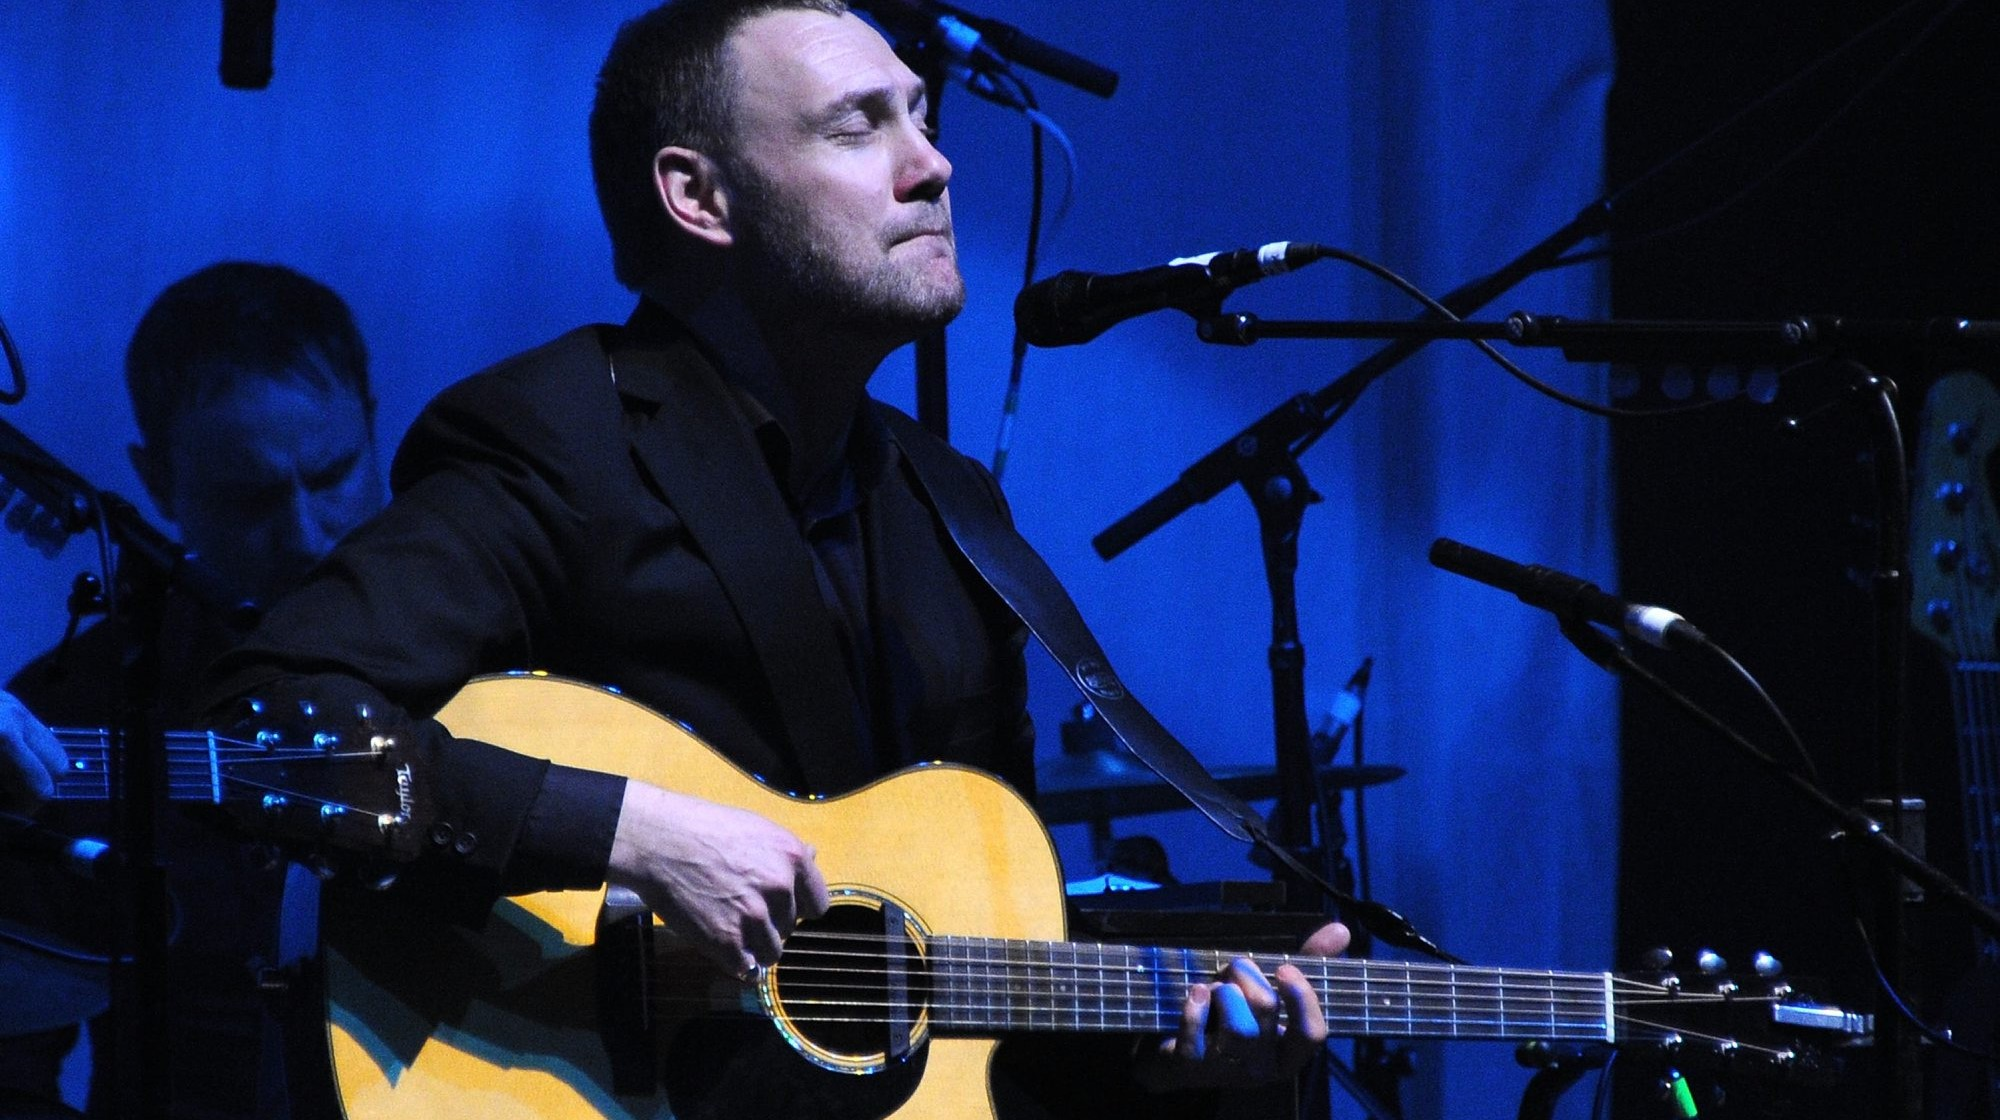 David Gray is fascinated by music and words.